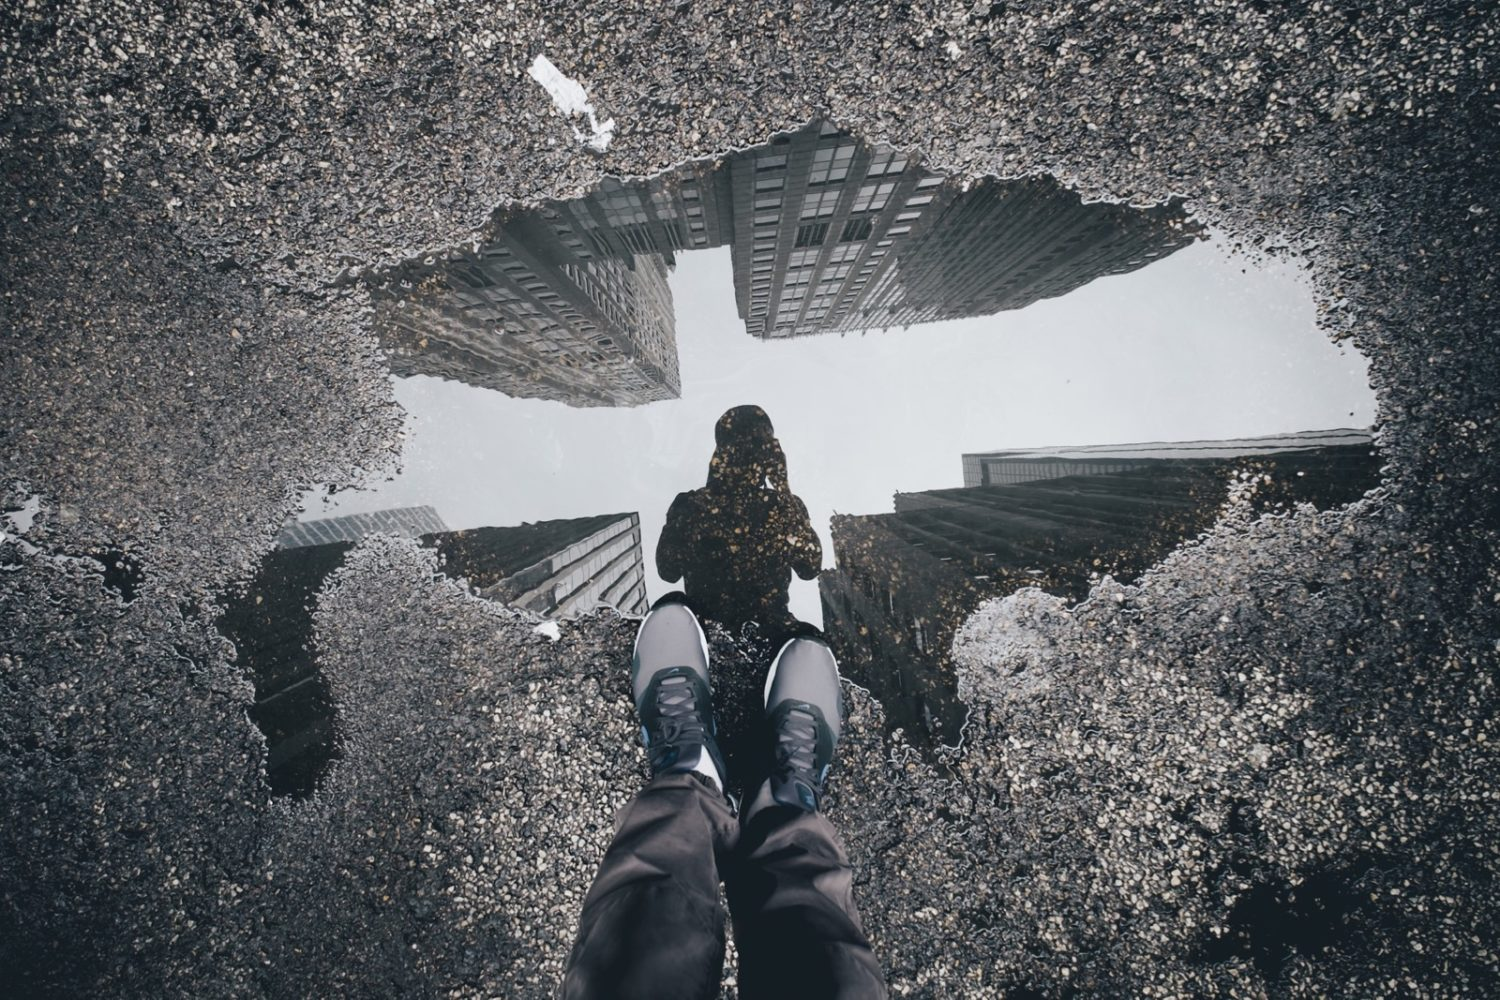 tips puddles tricks 500px epic looking reflection making skills down camera portrait rainy mind point